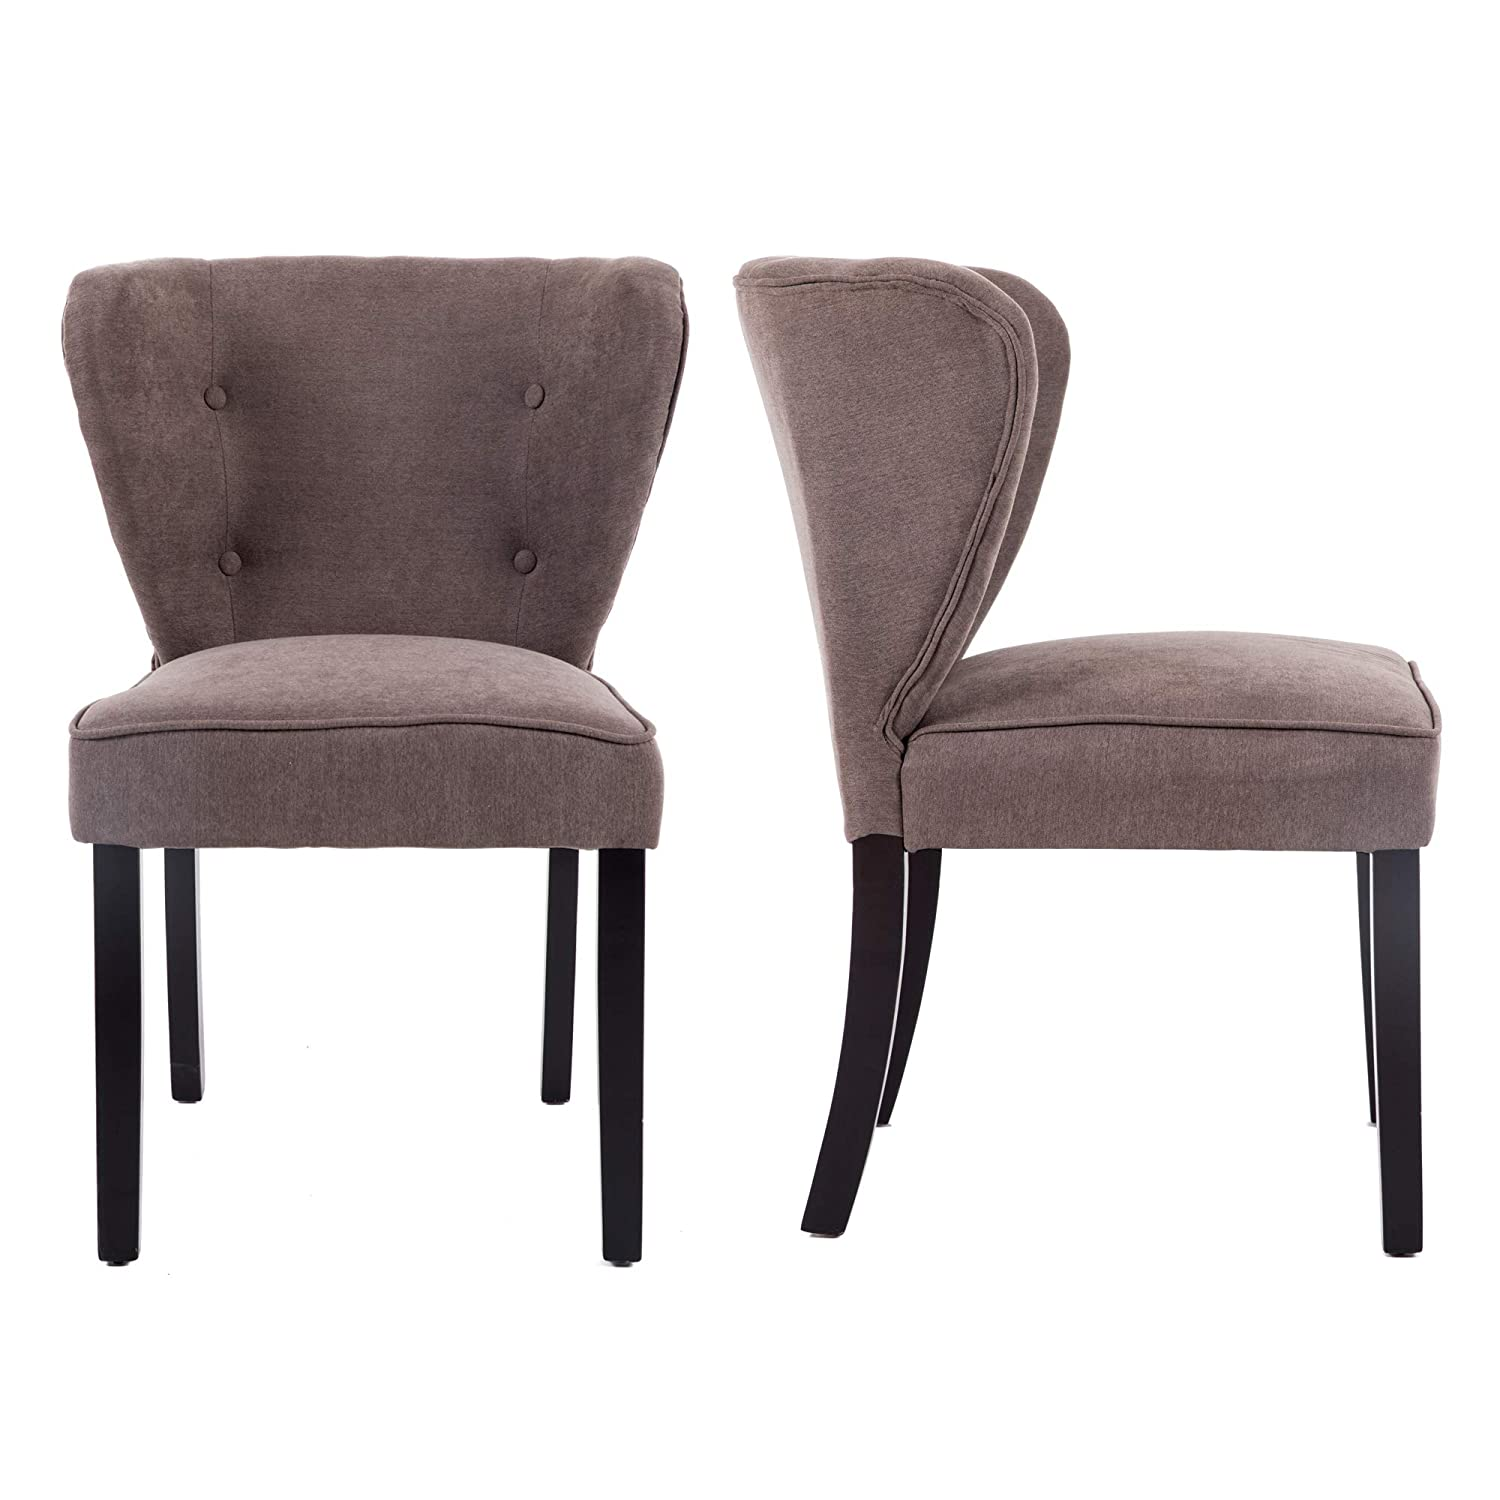 LSSBOUGHT Modern Elegant Button-Tufted Upholstered Dining Room Chairs with Solid Wood Legs, Set of 2 Chocolate